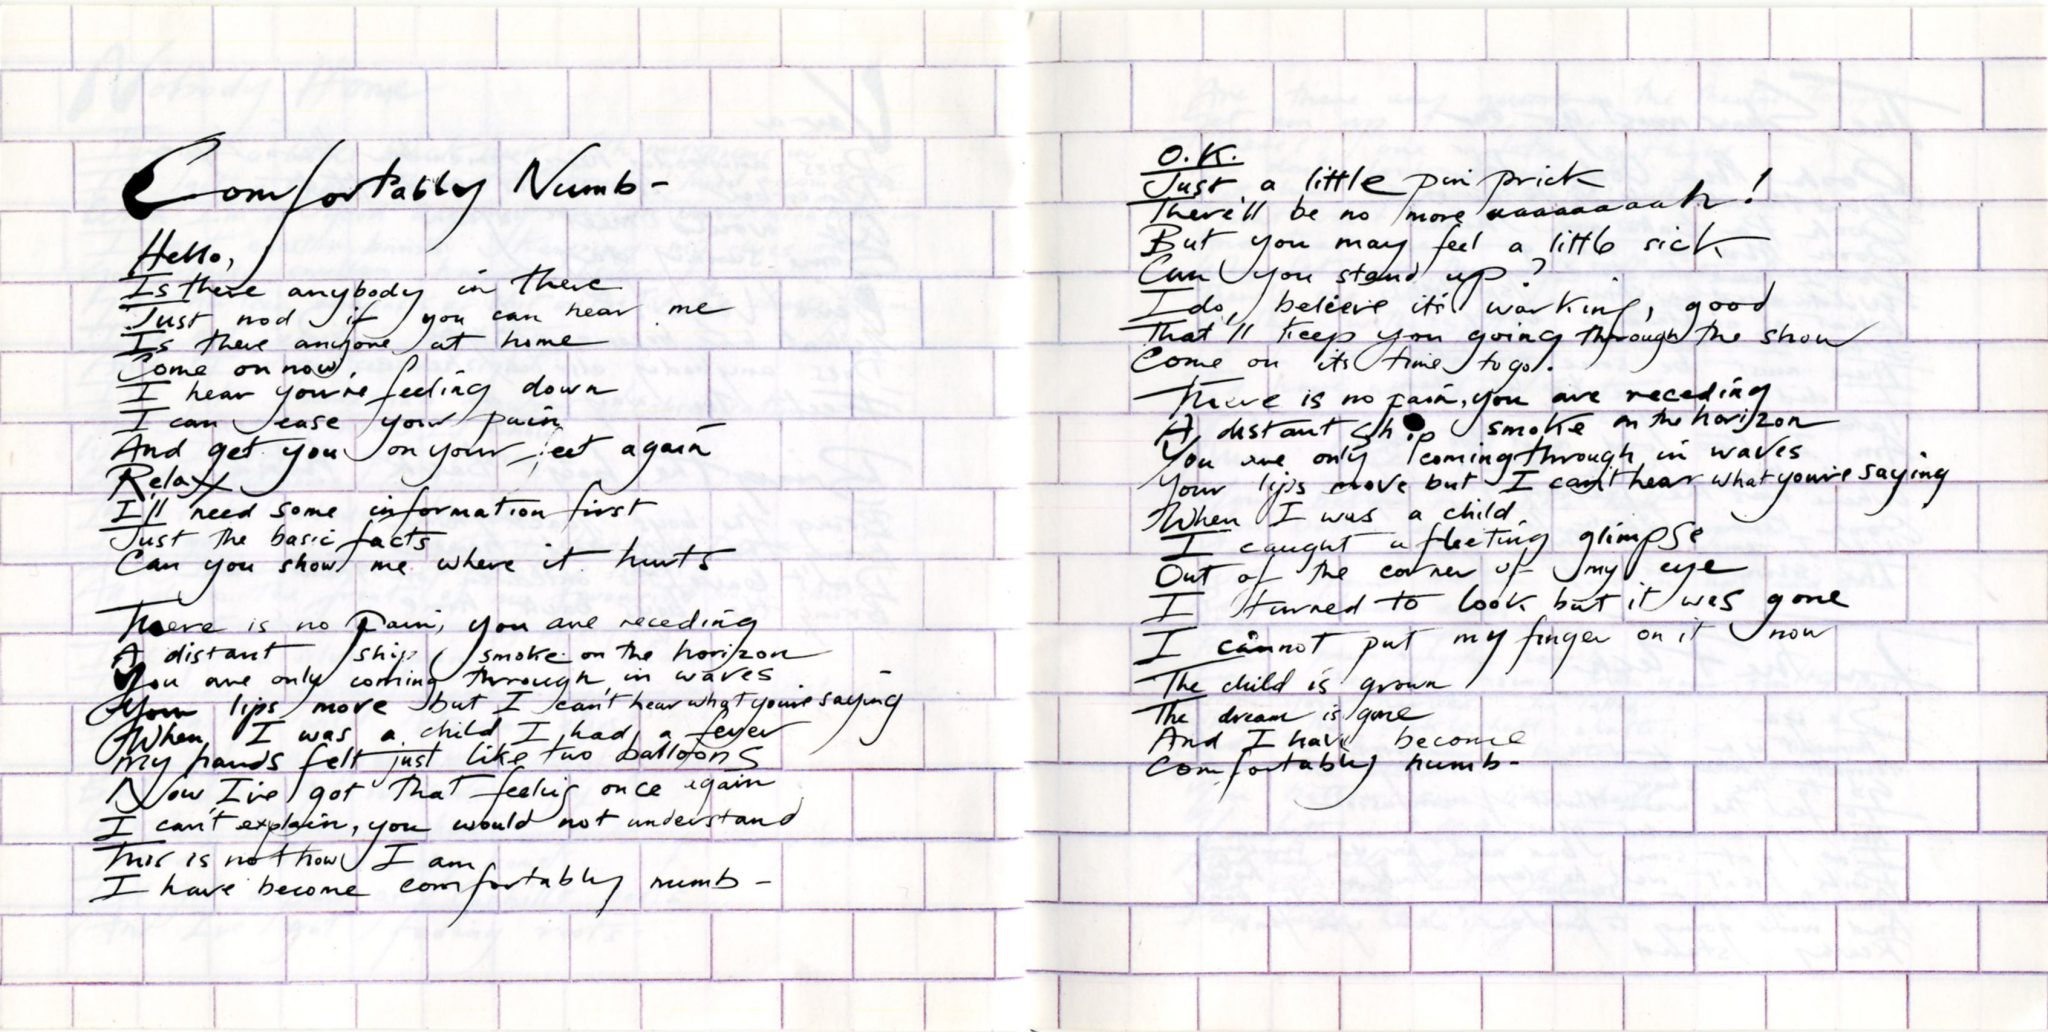 """an analysis of the philosophy in the lyrics of the song if by pink floyd And """"outside the wall"""" are two tracks off of pink floyd's seminal rock  if he did  die or commit suicide when he ventured """"outside the wall,""""  this brings up very  philosophical questions like, """"does true freedom only come from death  the  lyrics in """"outside the wall"""" include, """"the bleeding hearts and artists."""